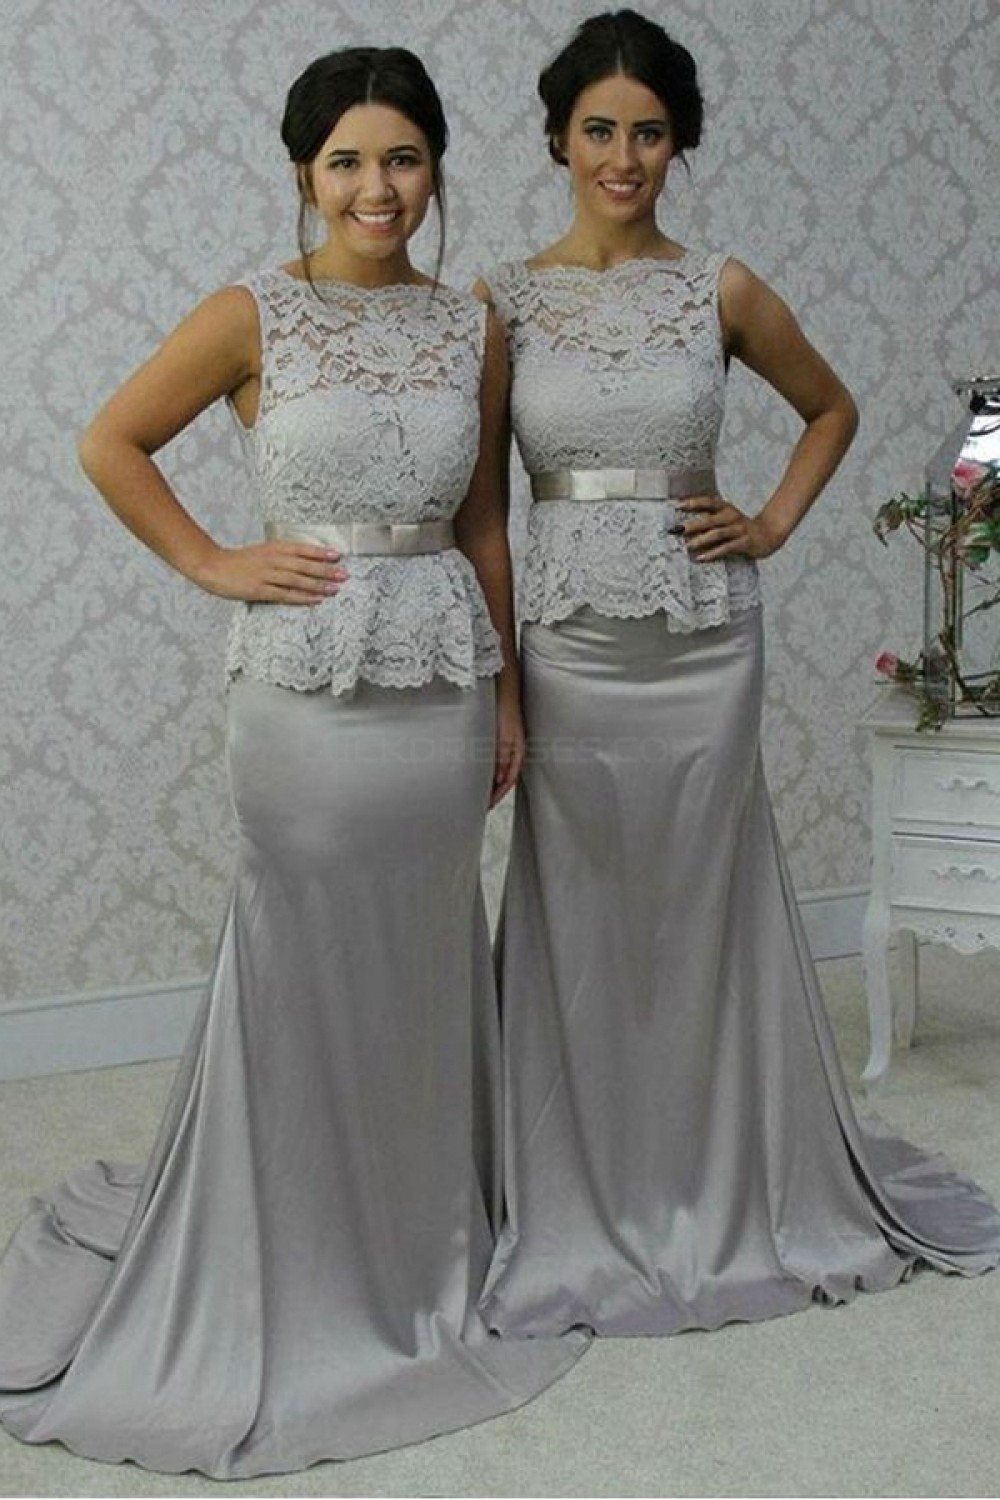 green and white wedding dresses photo - 1